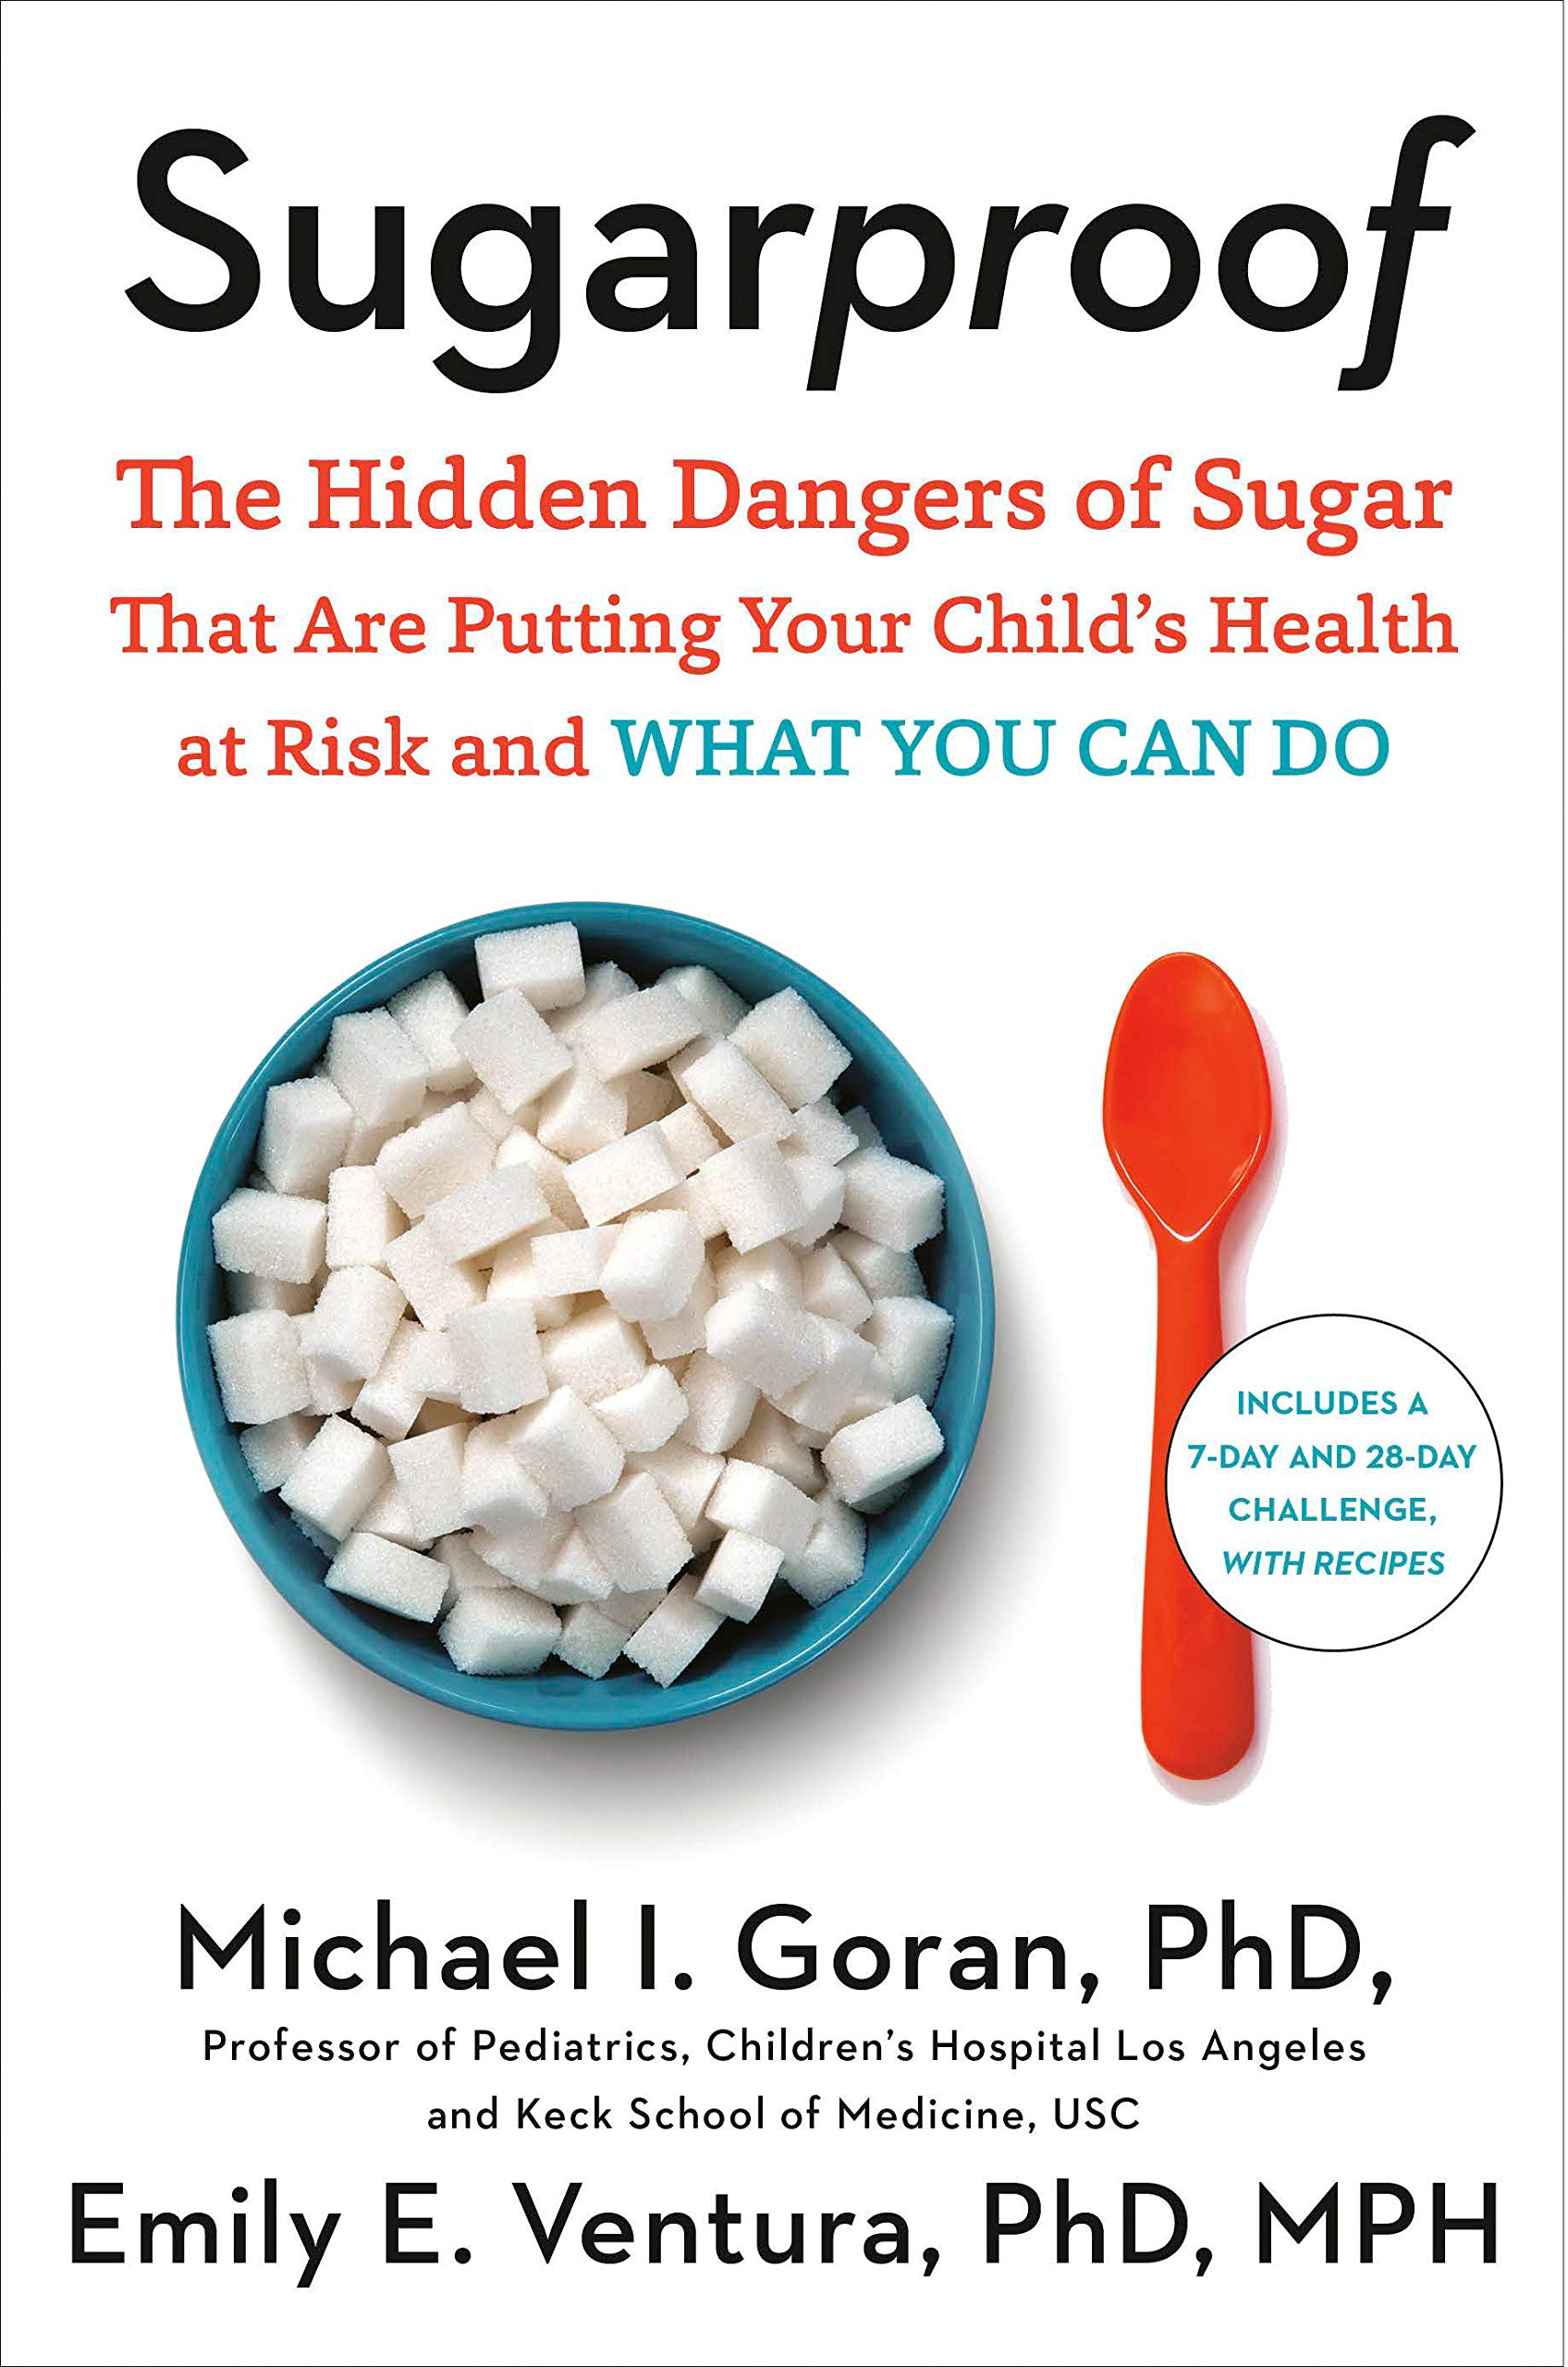 Image OfSugarproof: The Hidden Dangers Of Sugar That Are Putting Your Child's Health At Risk And What You Can Do